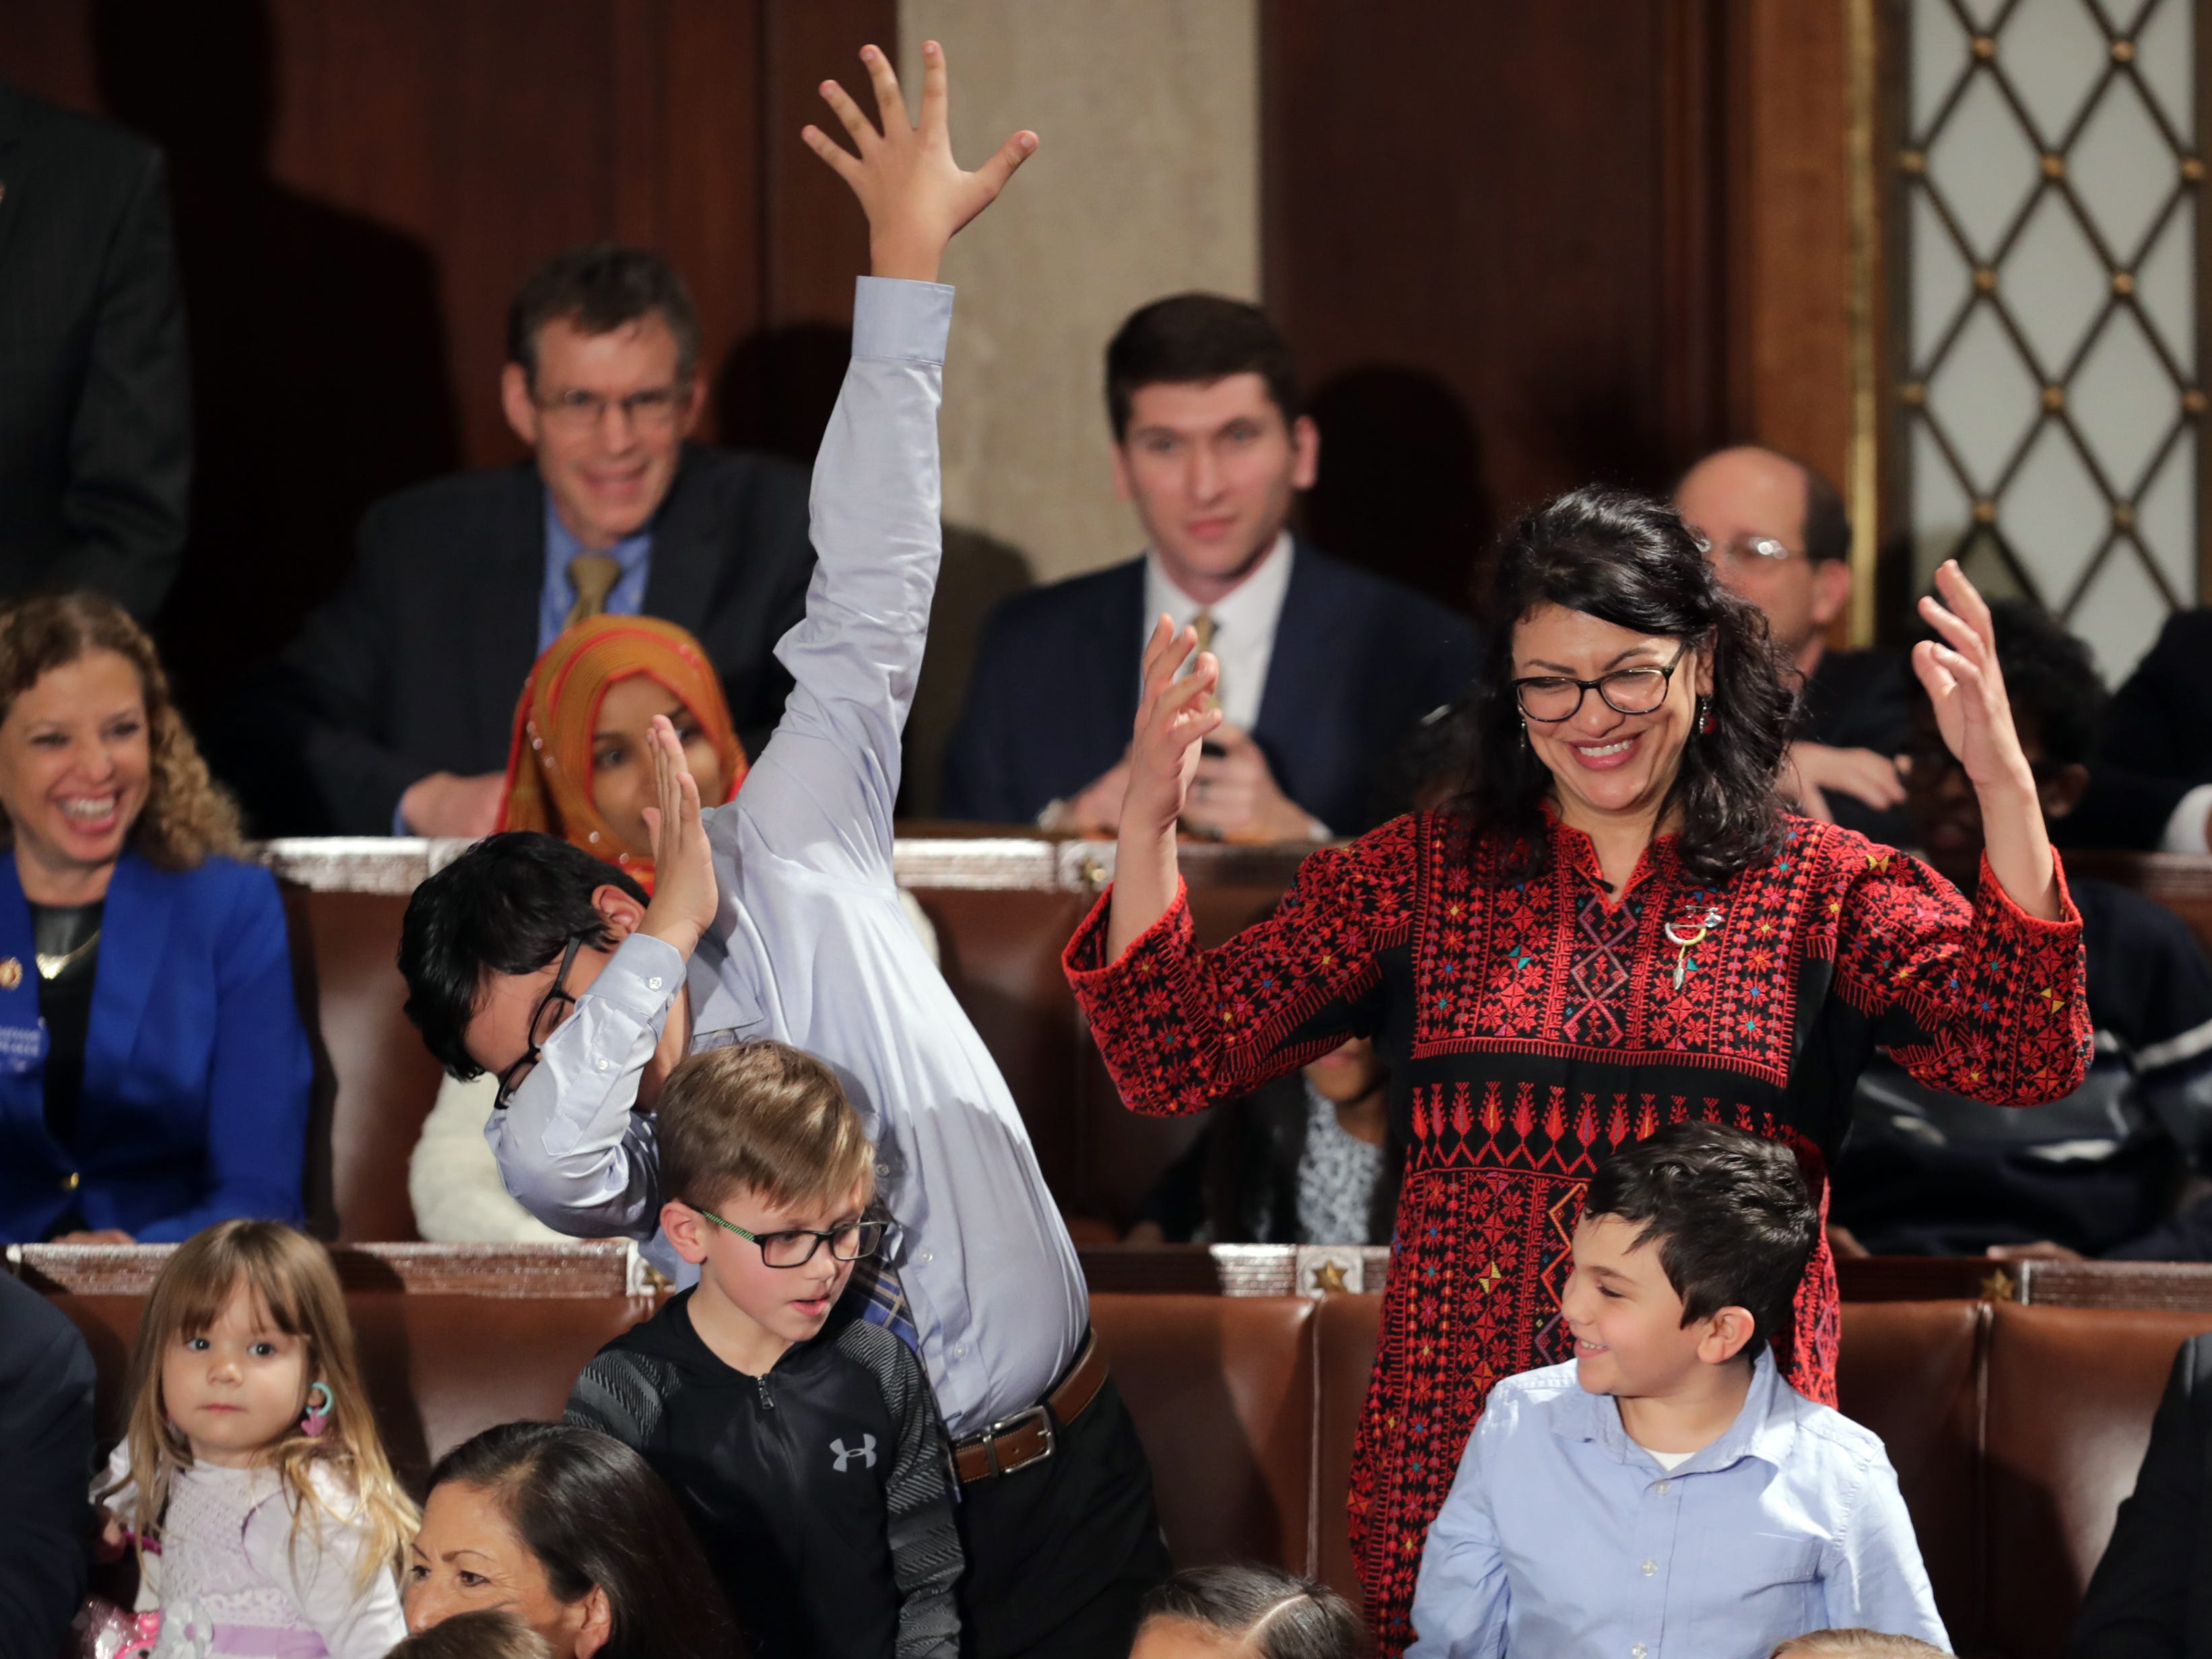 Rep.-elect Rashida Tlaib, D-Michigan, votes for Speaker-designate Rep. Nancy Pelosi, D-California, while her son does a dance move during the first session of the 116th Congress at the U.S. Capitol Jan. 3, 2019, in Washington, D.C. Under the cloud of a partial federal government shutdown, Pelosi will reclaim her former title as speaker of the House and her fellow Democrats will take control of the House of Representatives for the second time in eight years.